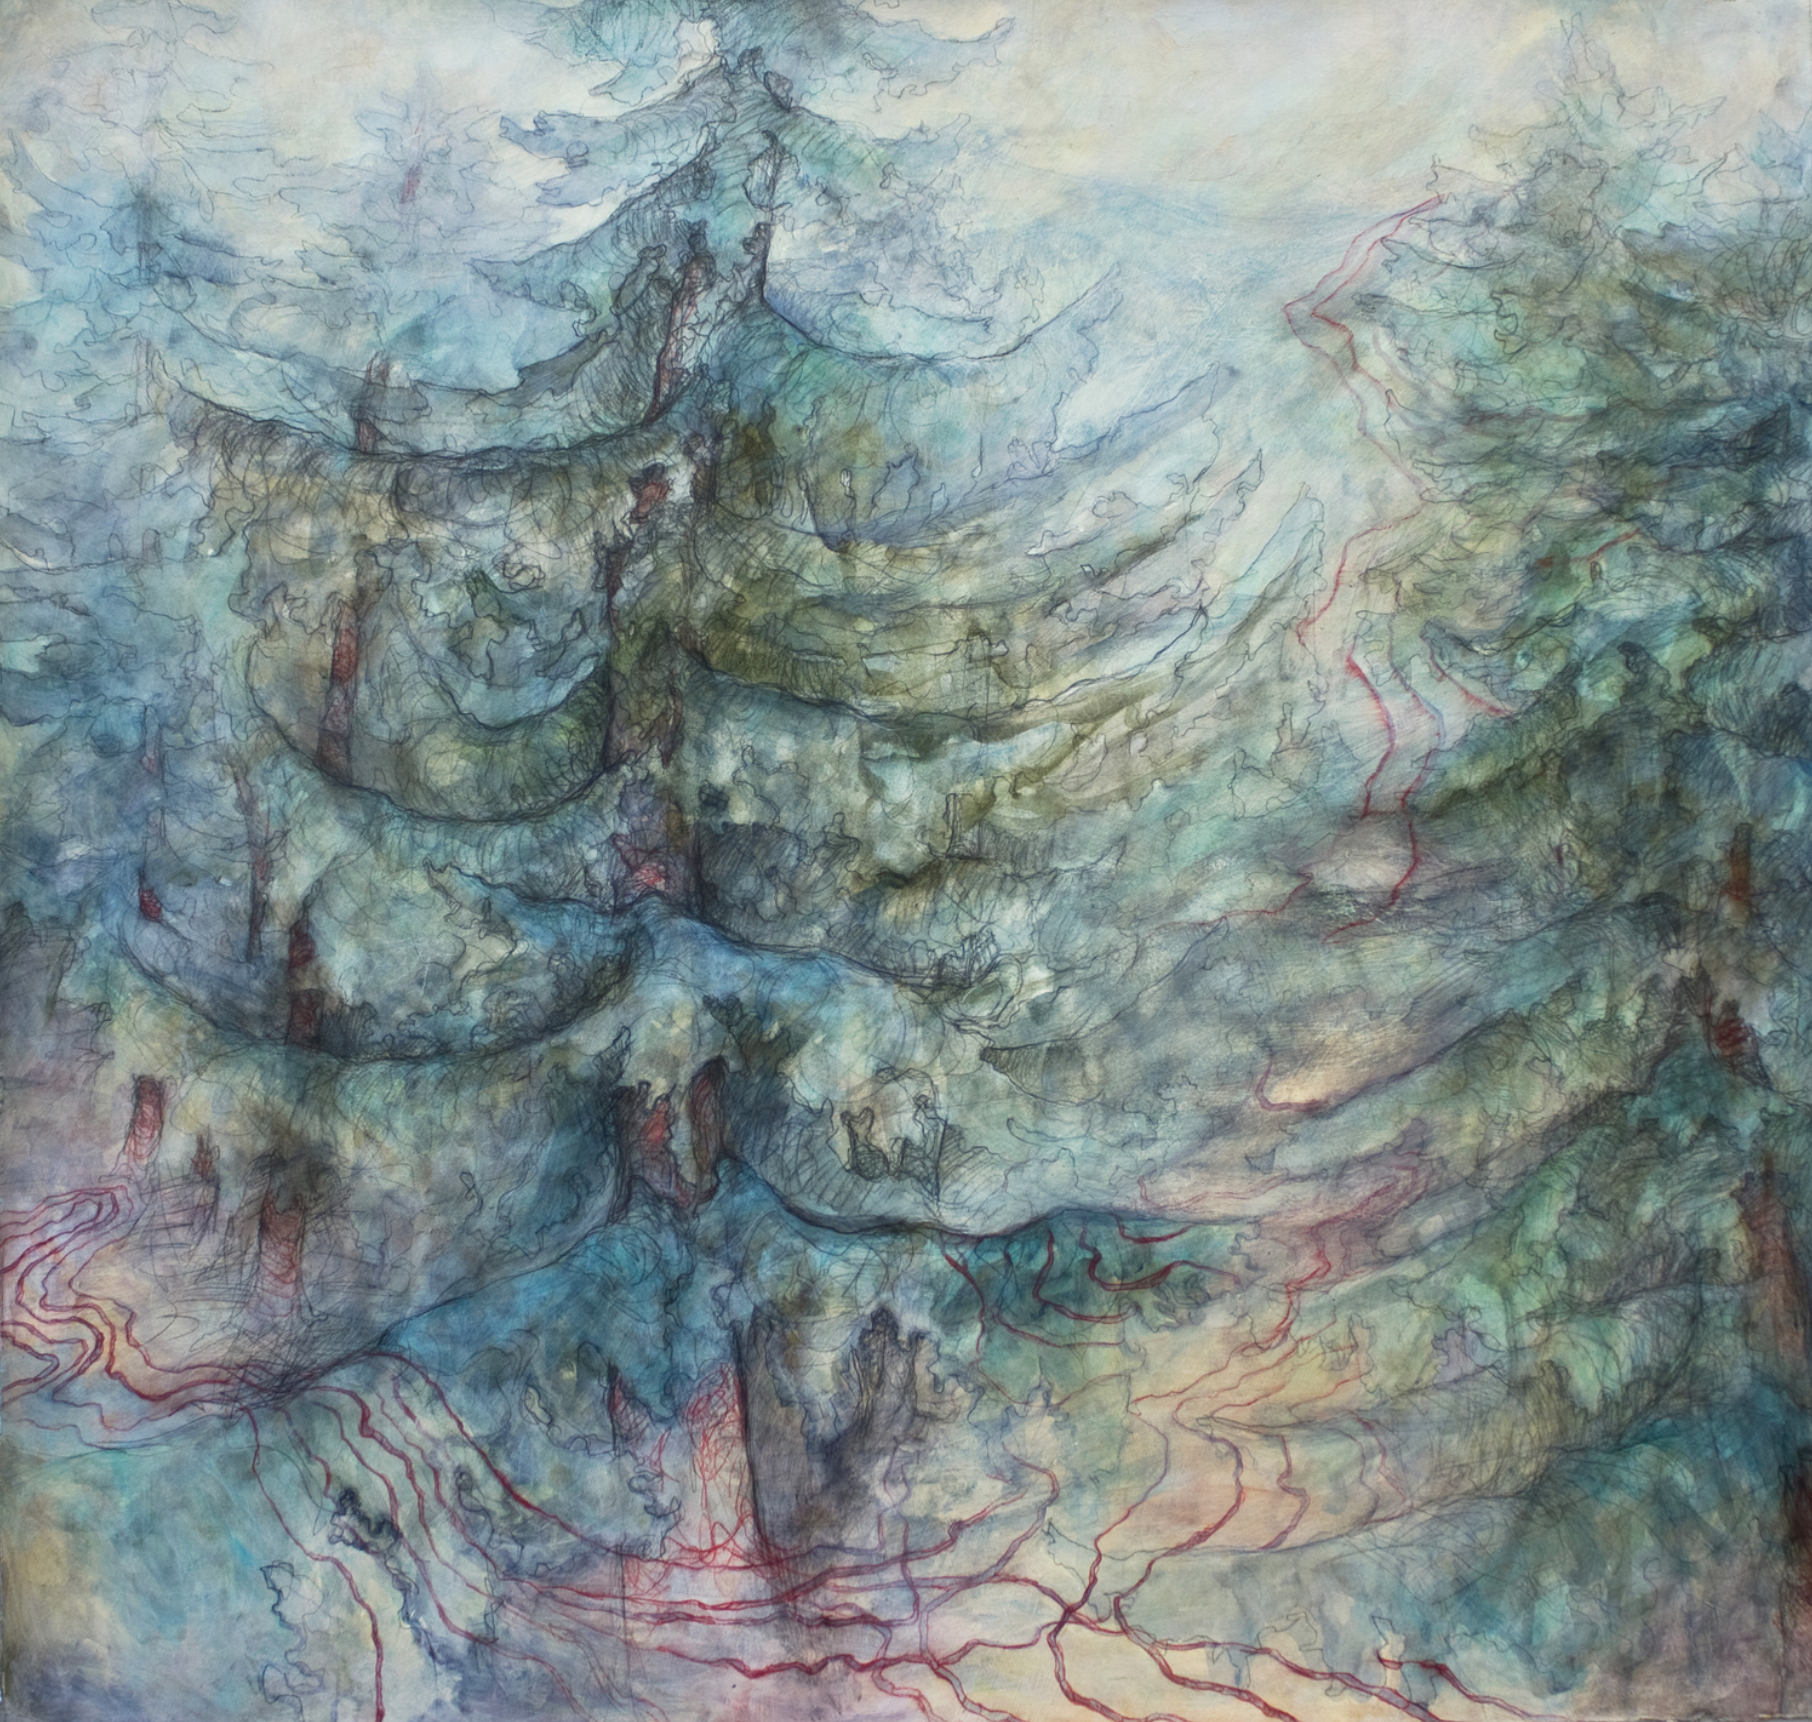 """Carly Drew, """"Christmas Tree Farm Diptych"""" (Left Panel).  Paper, watercolor, graphite, acrylic. 2012.  32 x 32in.   SOLD."""